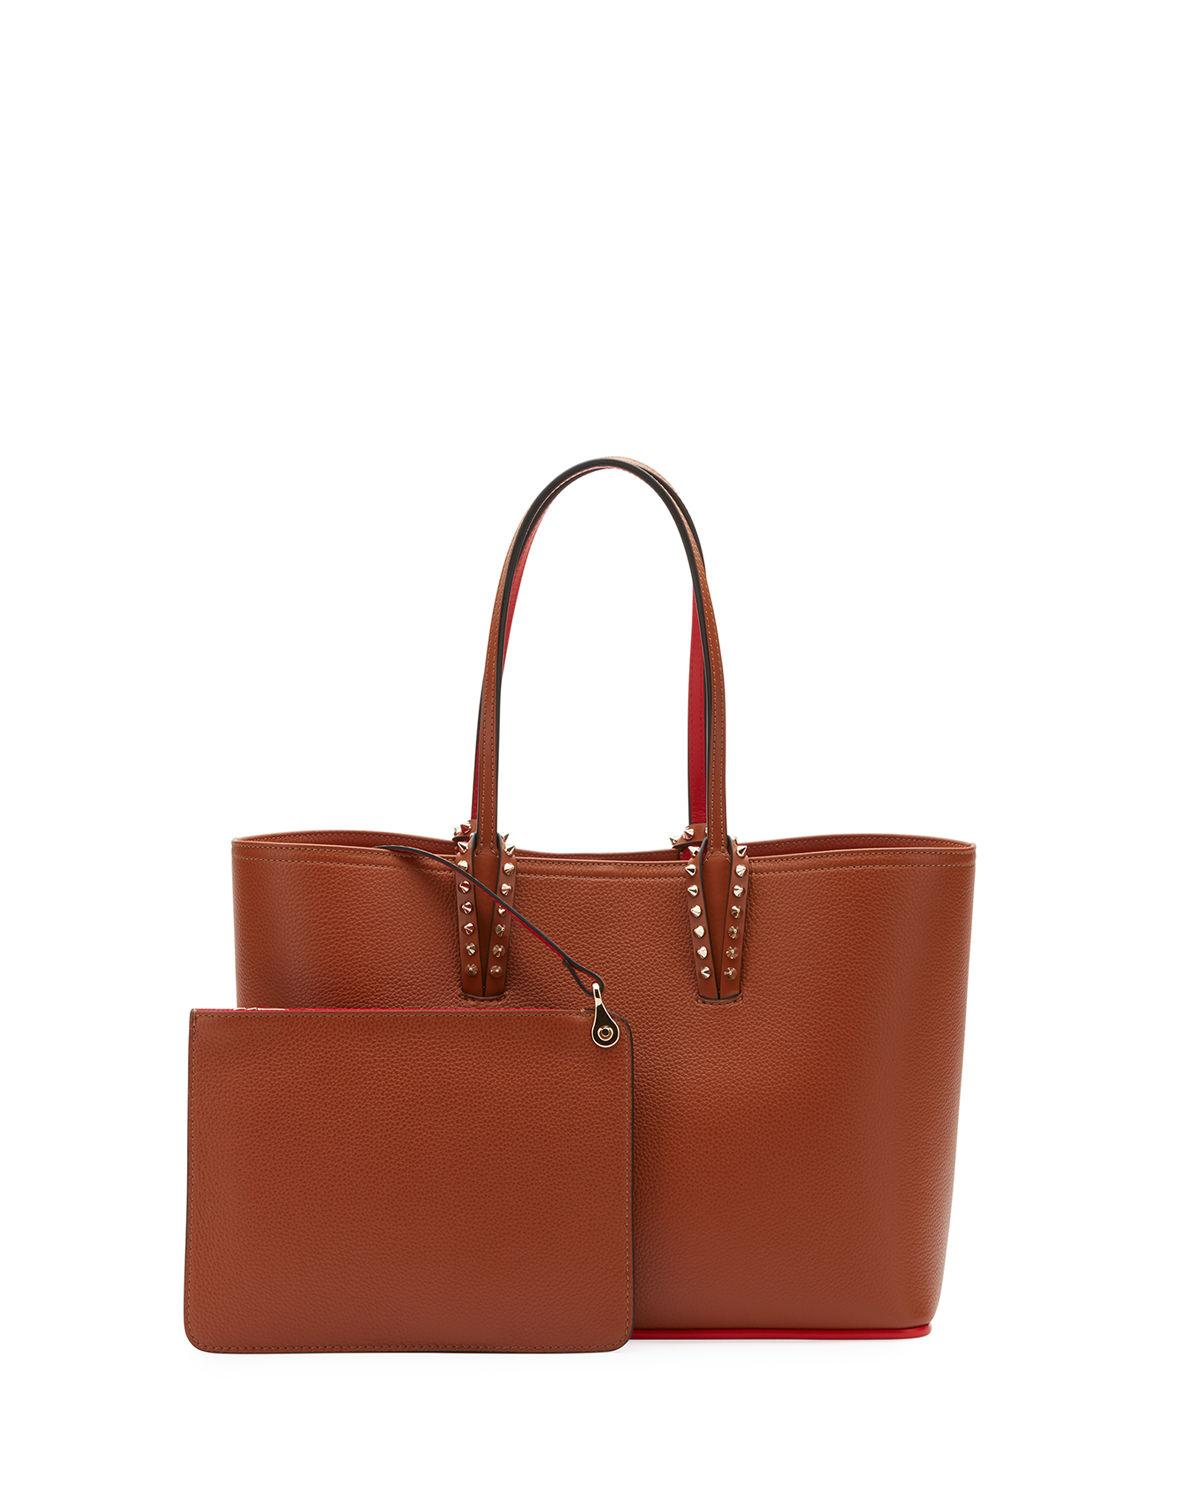 Lyst - Christian Louboutin Cabata in Brown e226b8cab98d4